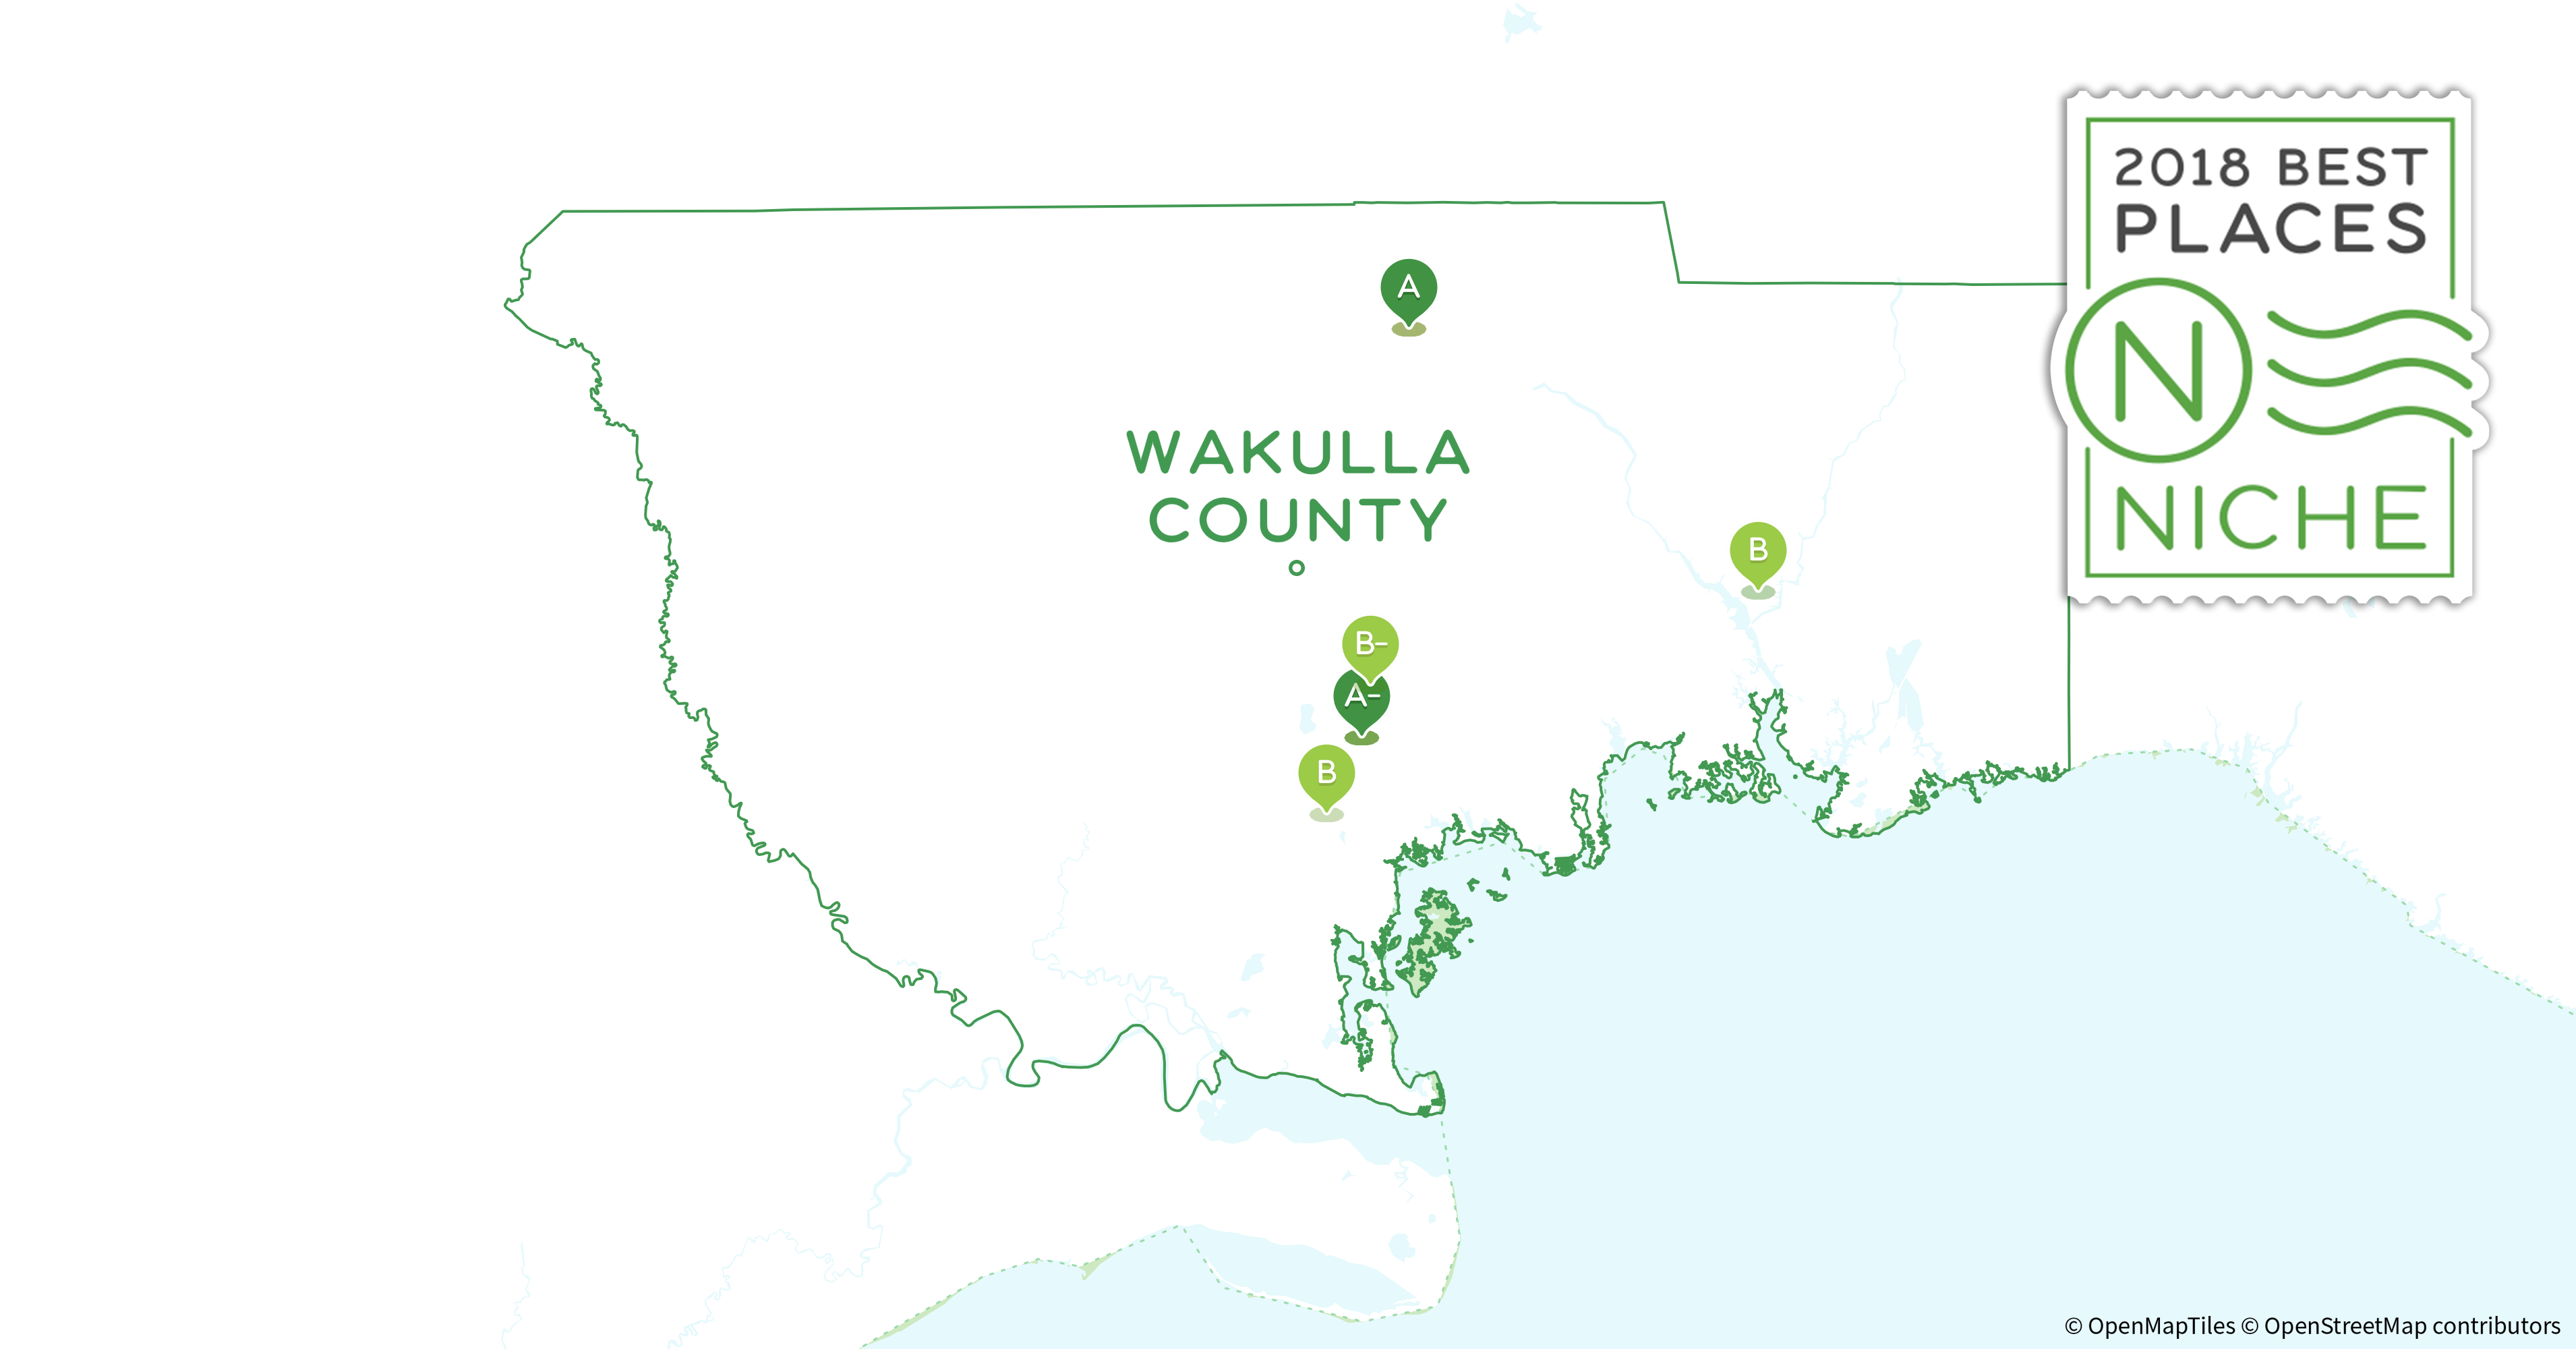 Map Of Wakulla County Florida.2018 Best Places To Live In Wakulla County Fl Niche